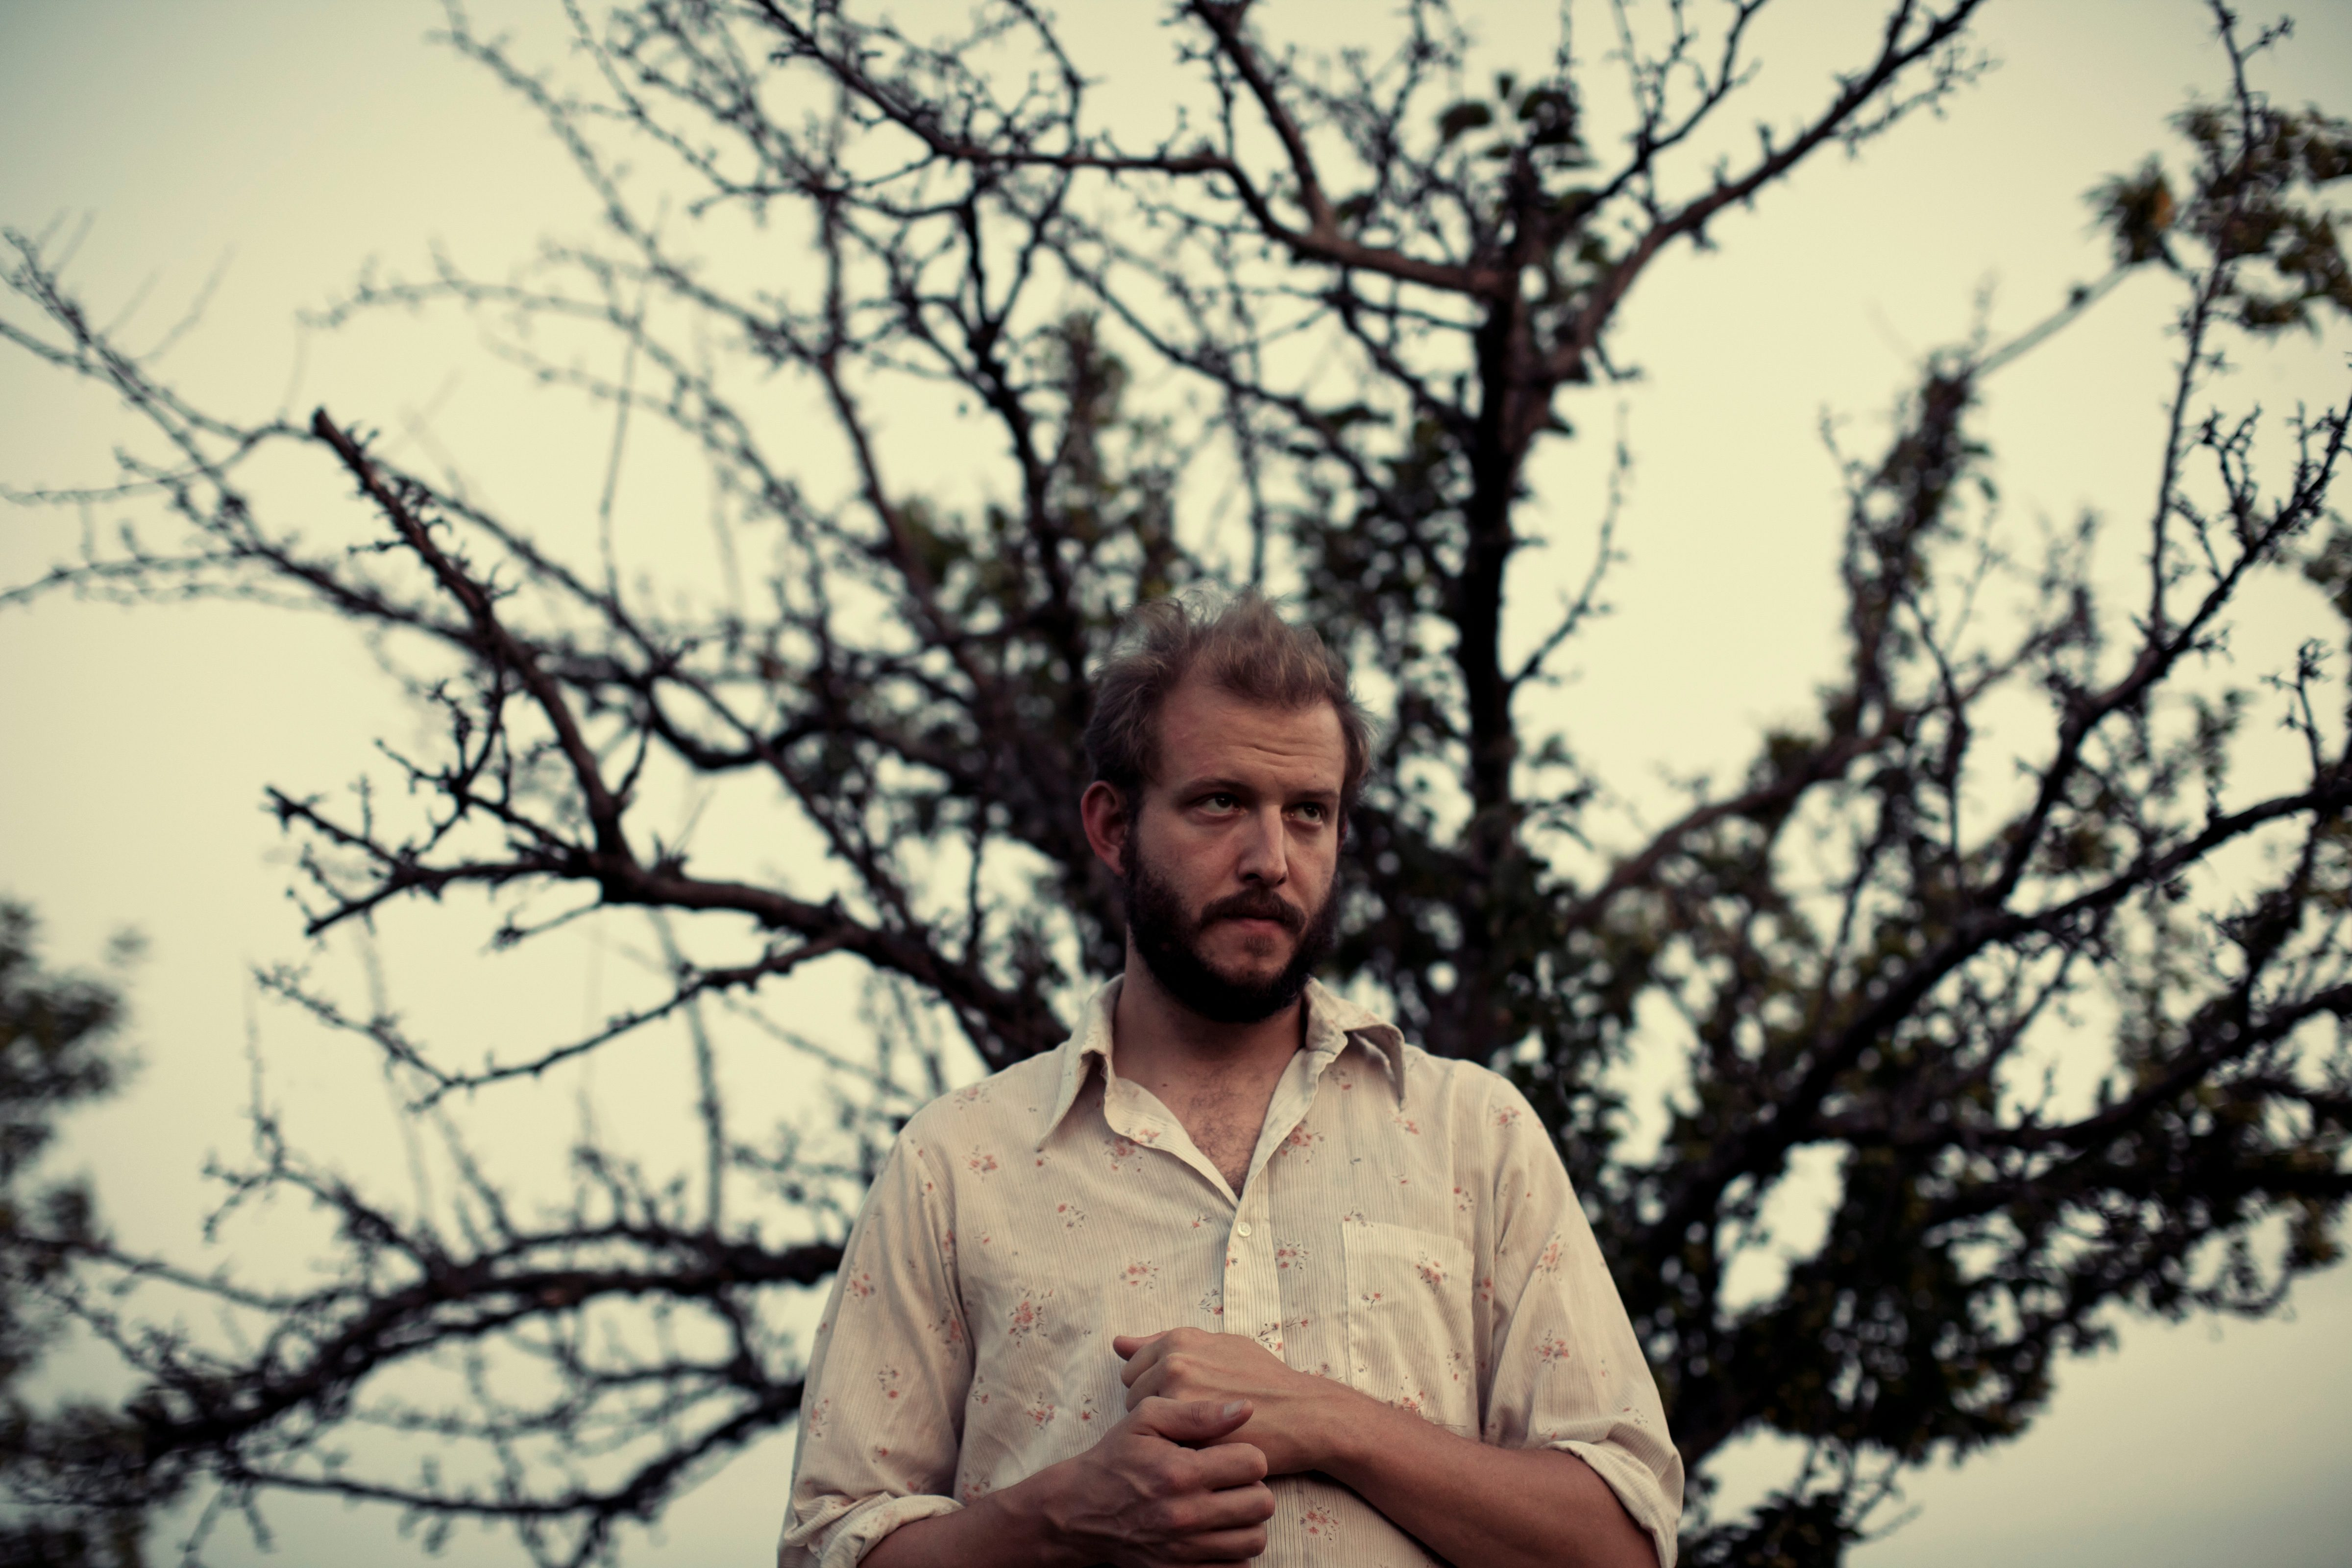 """Former Grammy Winner Bon Iver Blasts Award Show, Tweets """"Move on From This Shit Show"""""""